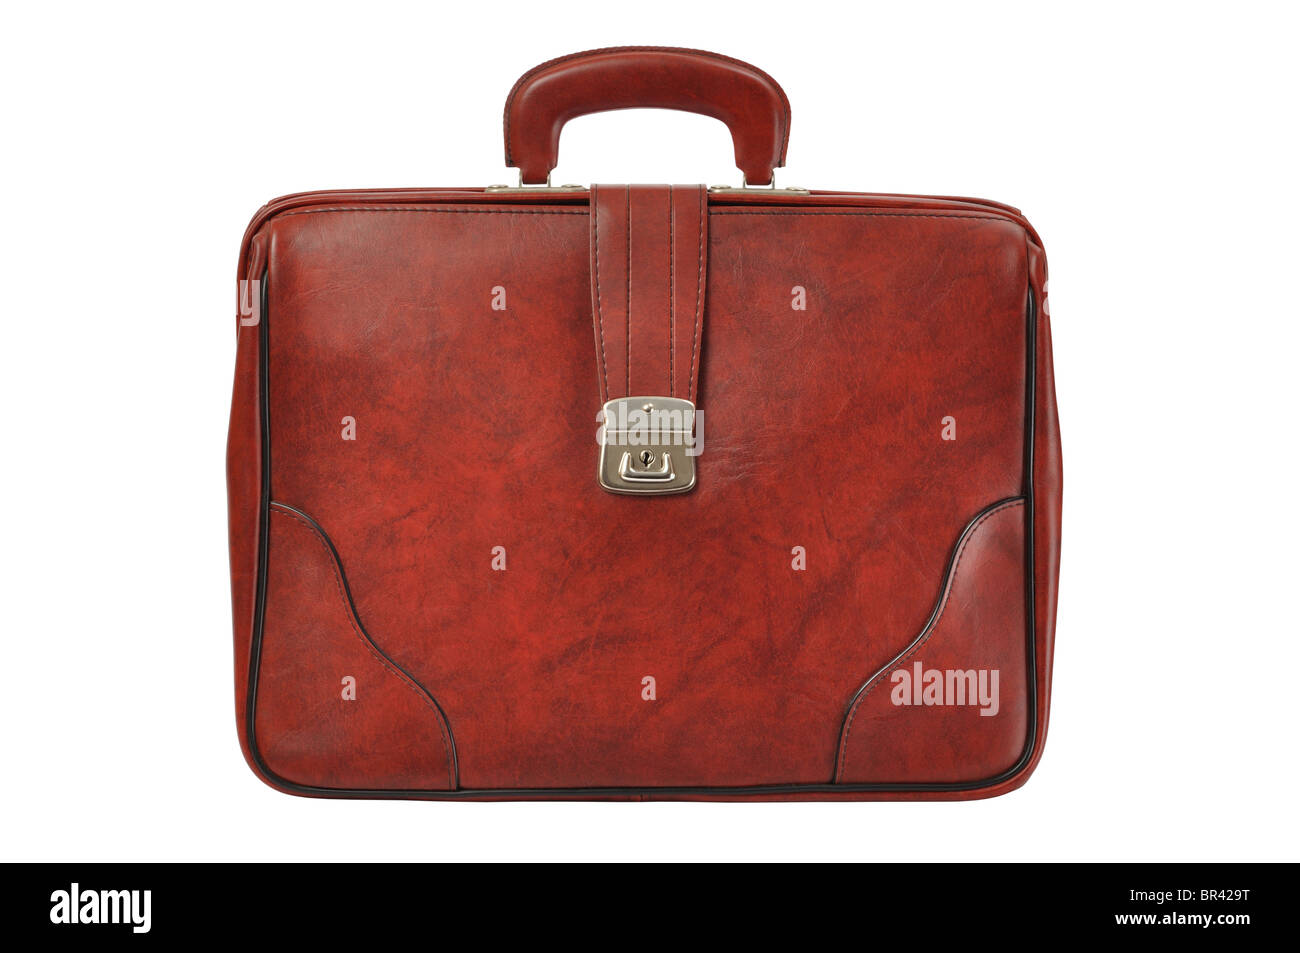 Brown Leather Briefcase - Stock Image